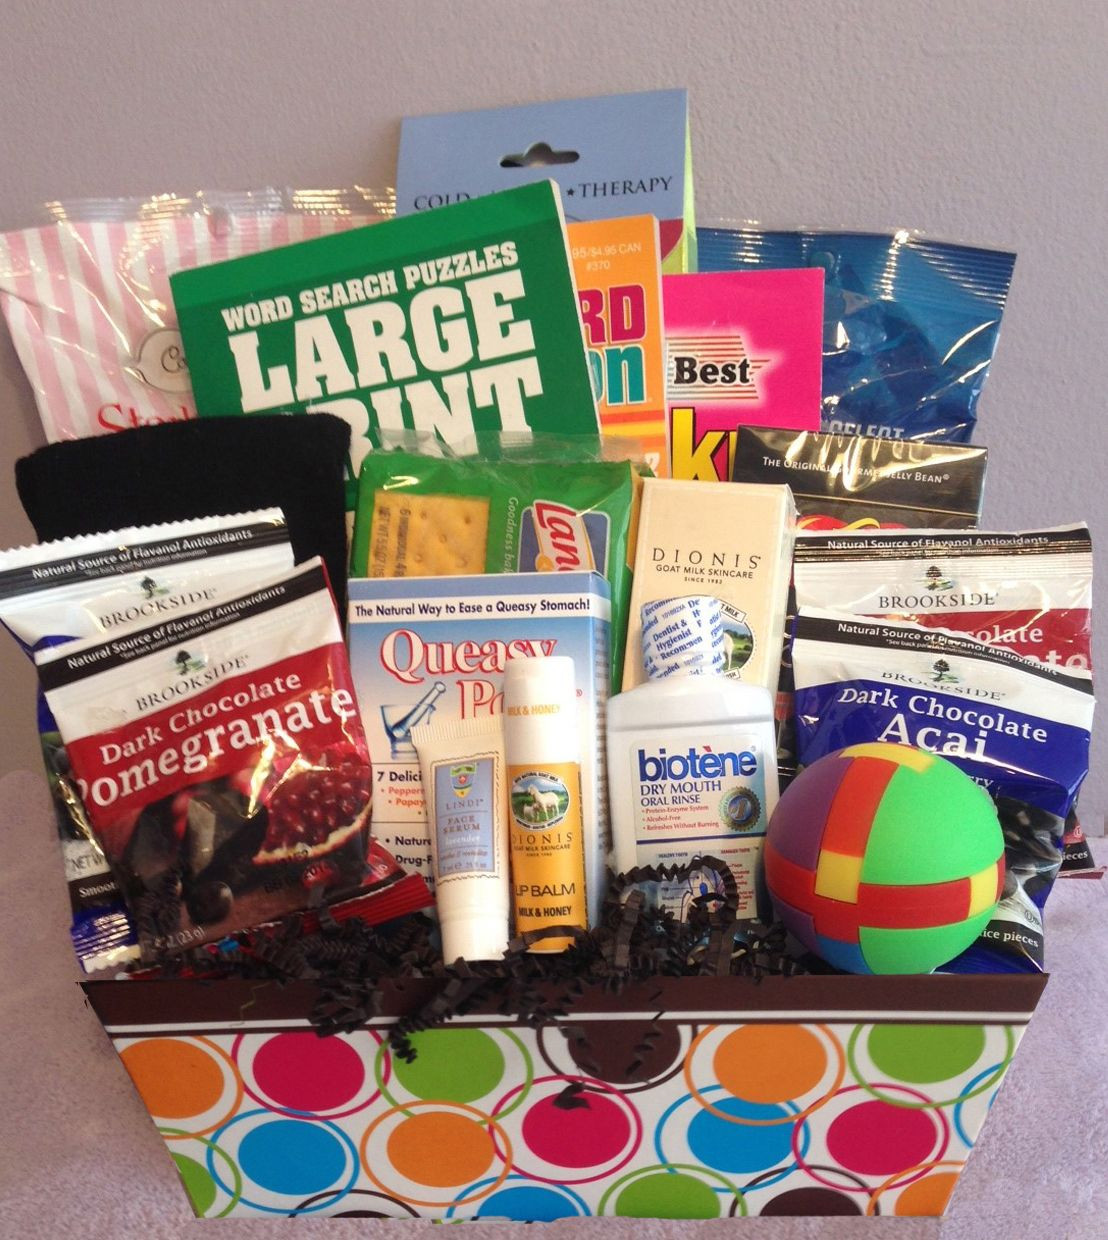 Best ideas about Chemo Gift Ideas . Save or Pin Men s Medium Chemo Basket ideas Now.